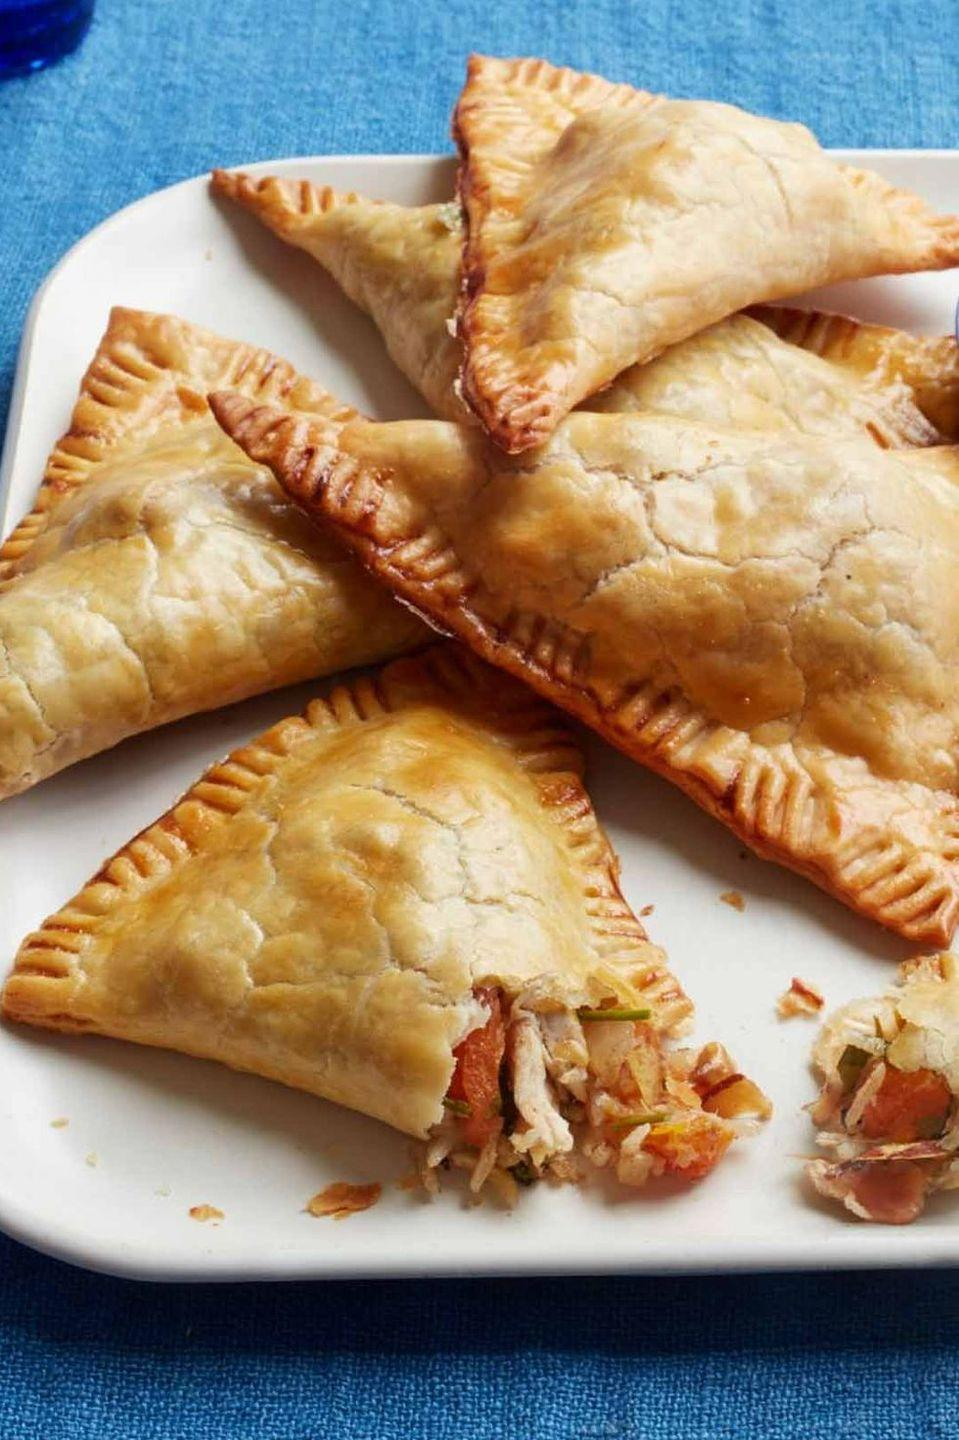 """<p>Turn a roasted bird into the perfect weekend movie snack by using it as the base for a sweet and spicy fruit mixture. </p><p><em><a href=""""https://www.womansday.com/food-recipes/food-drinks/recipes/a52072/turkey-turnovers-with-apricots-and-almonds/"""" rel=""""nofollow noopener"""" target=""""_blank"""" data-ylk=""""slk:Get the recipe from Woman's Day »"""" class=""""link rapid-noclick-resp"""">Get the recipe from Woman's Day »</a></em></p>"""